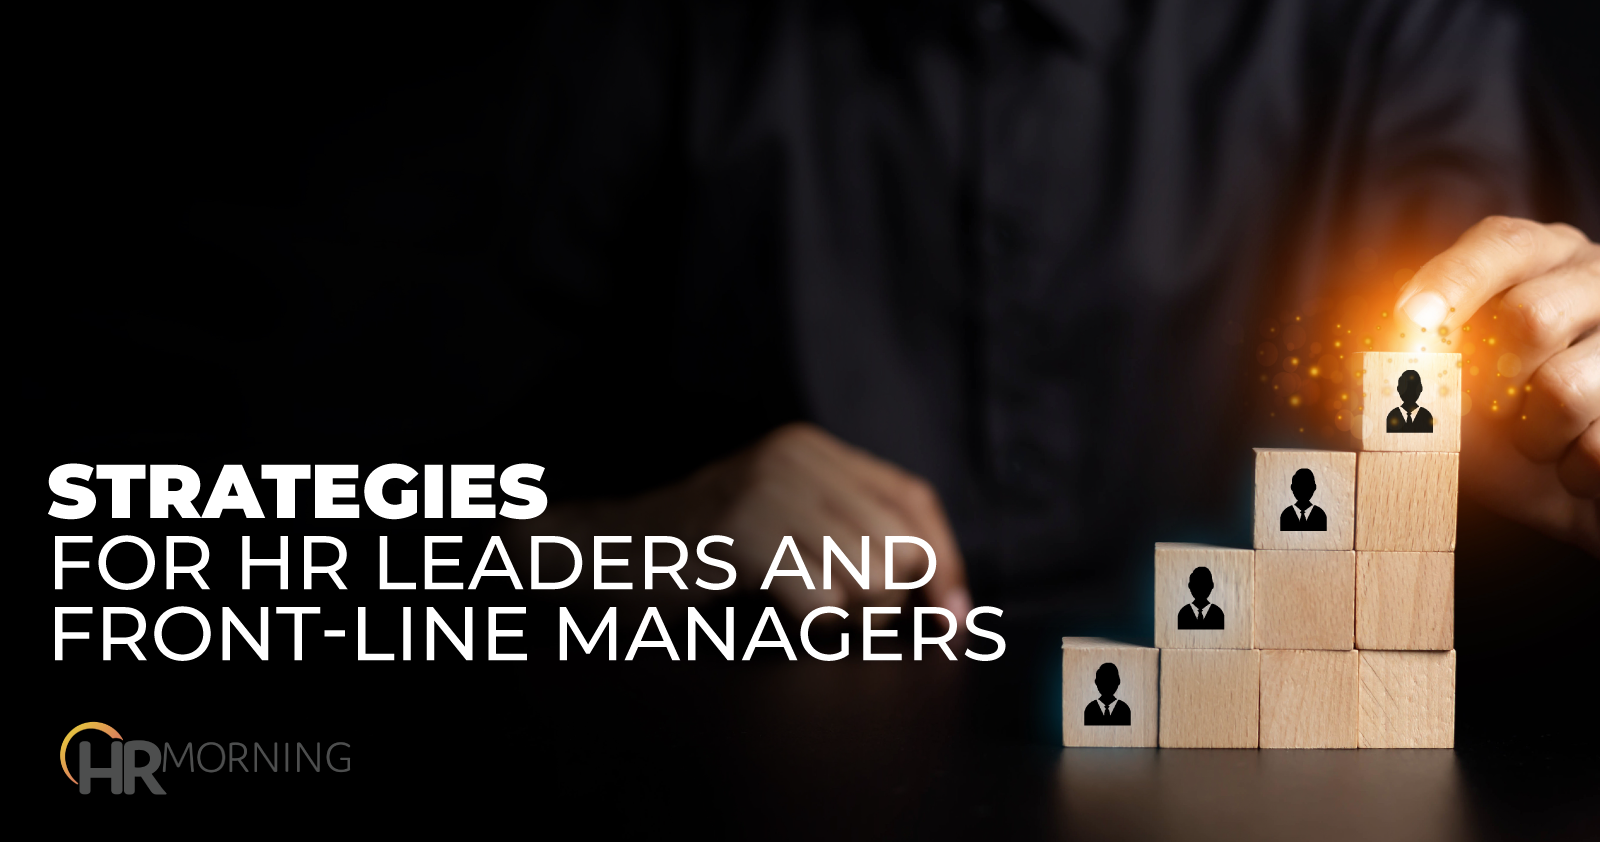 Strategies For HR Leaders And Front-line Managers